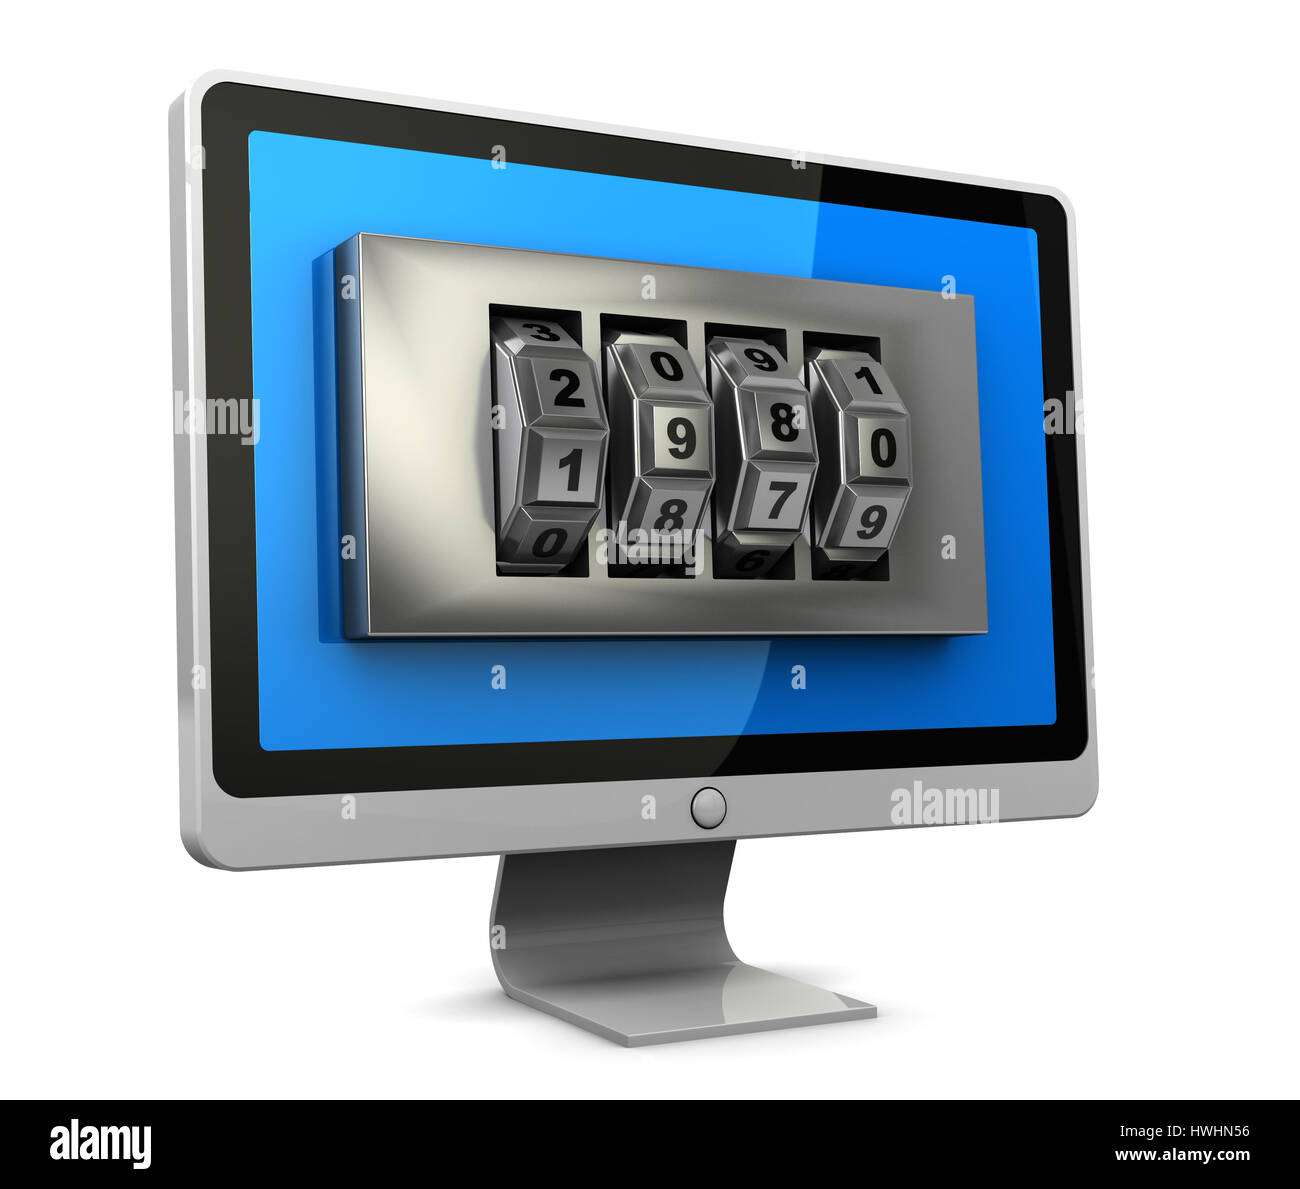 3d illustration of computer monitor with combination lock in screen - Stock Image